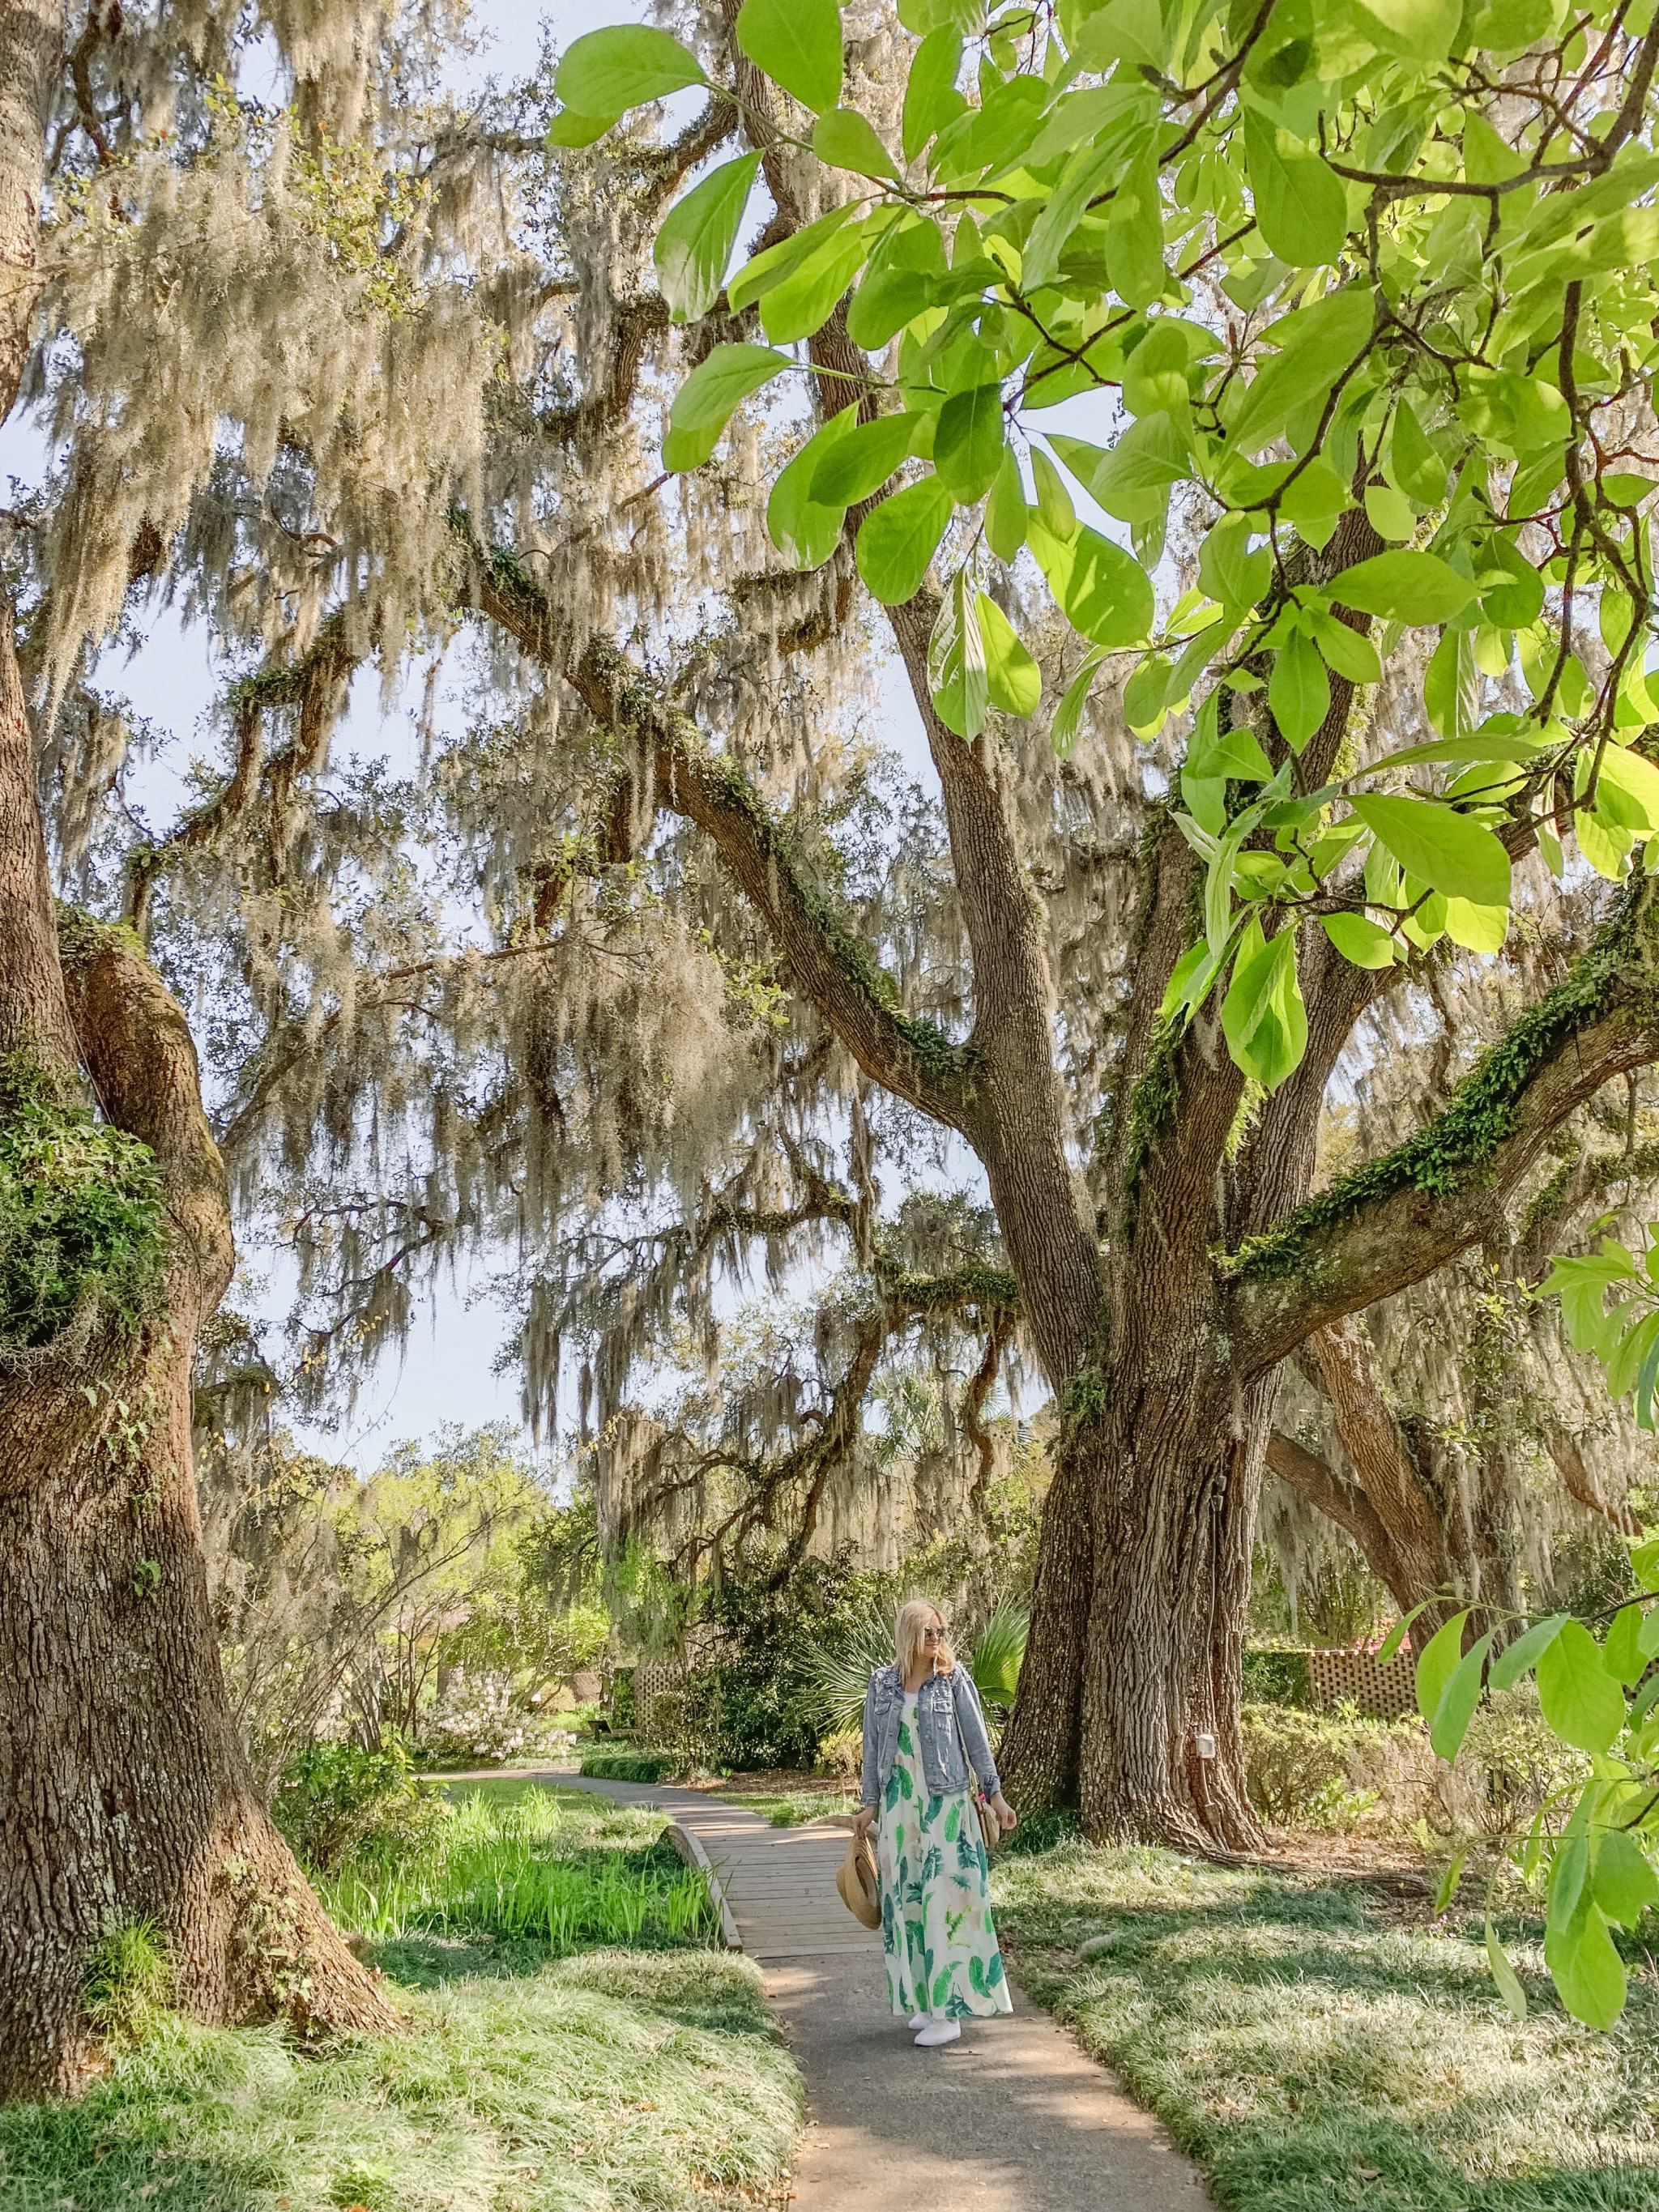 Bijuleni - Brookgreen Gardens, Myrtle Beach Vacation Guide